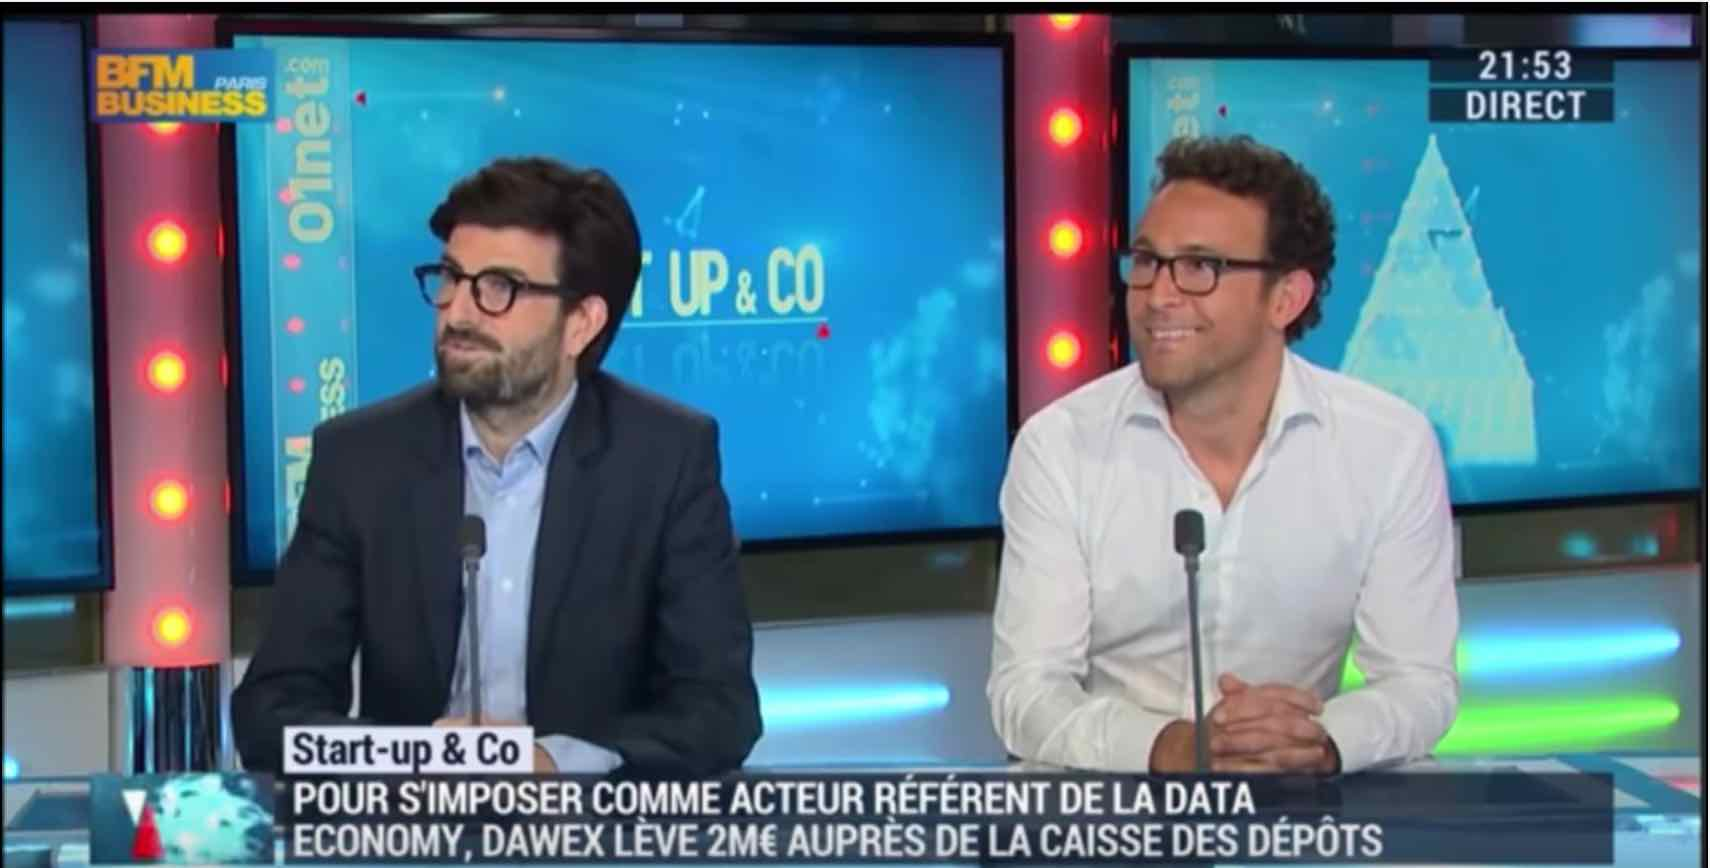 Presentation of Dawex by its co-founders on BFM Business [French]